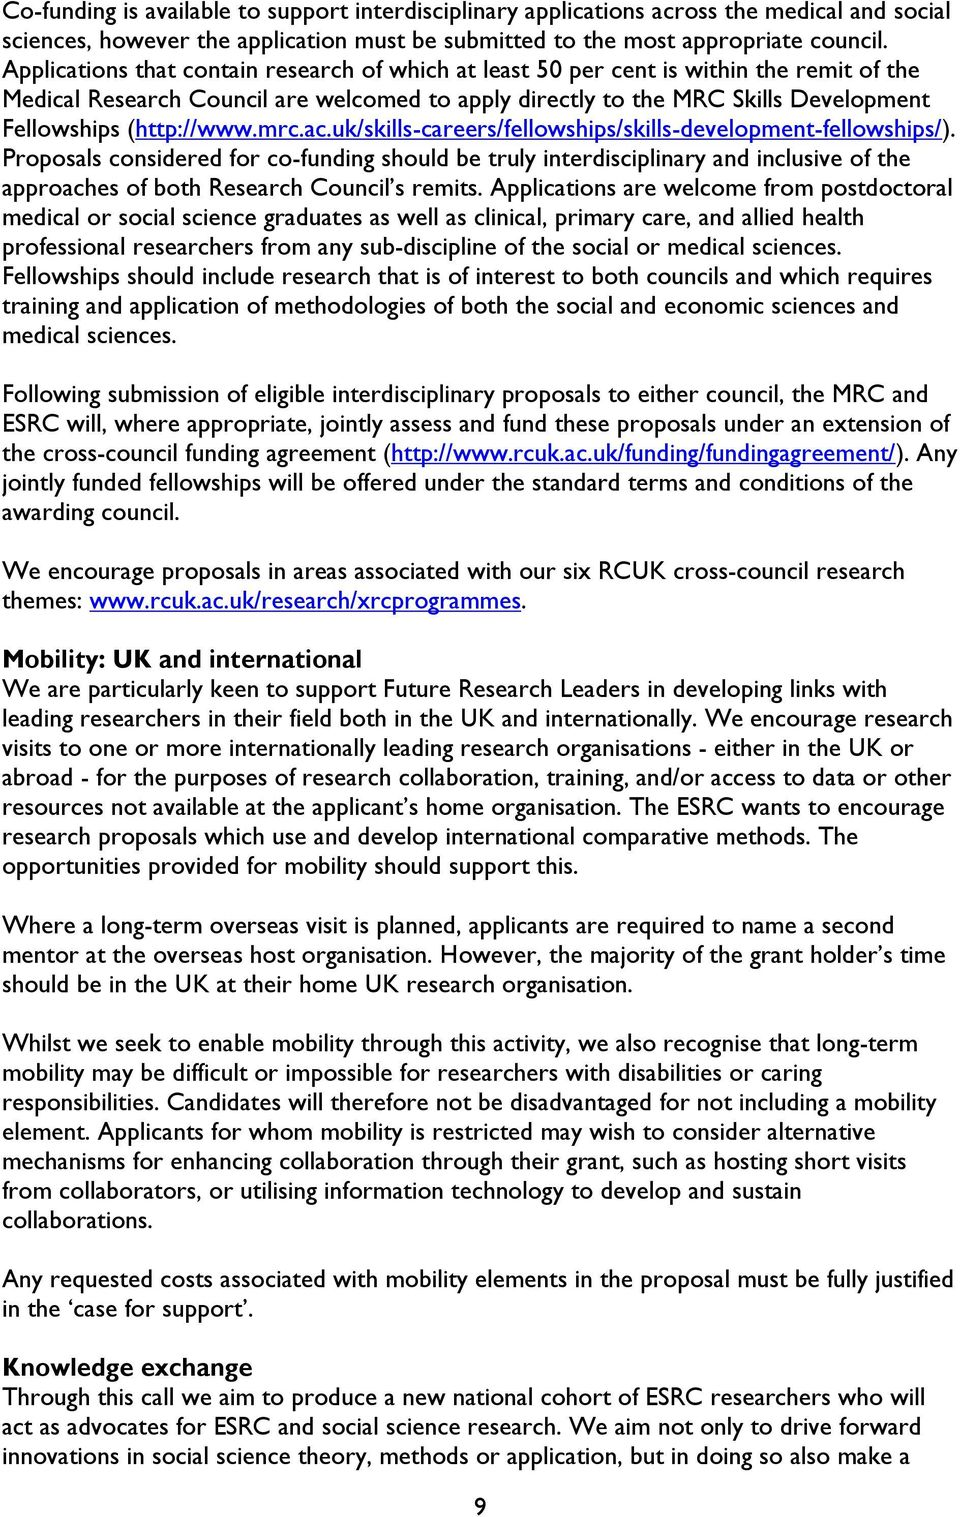 (http://www.mrc.ac.uk/skills-careers/fellowships/skills-development-fellowships/).